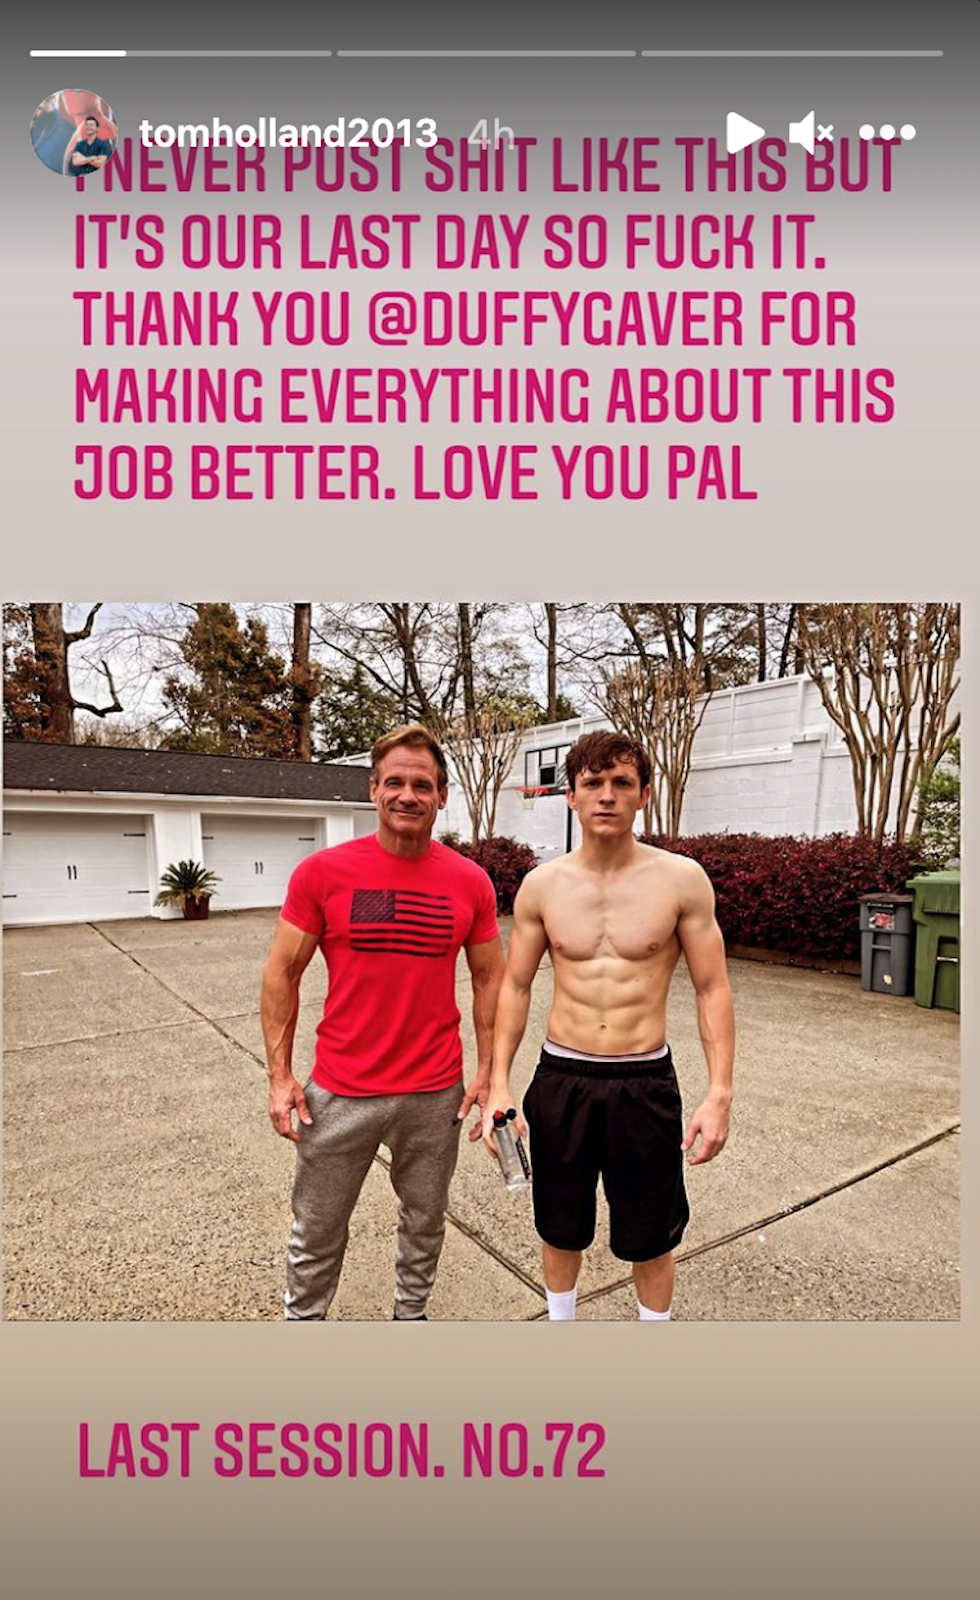 Tom Holland and trainer Duffy Gaver on last day of training